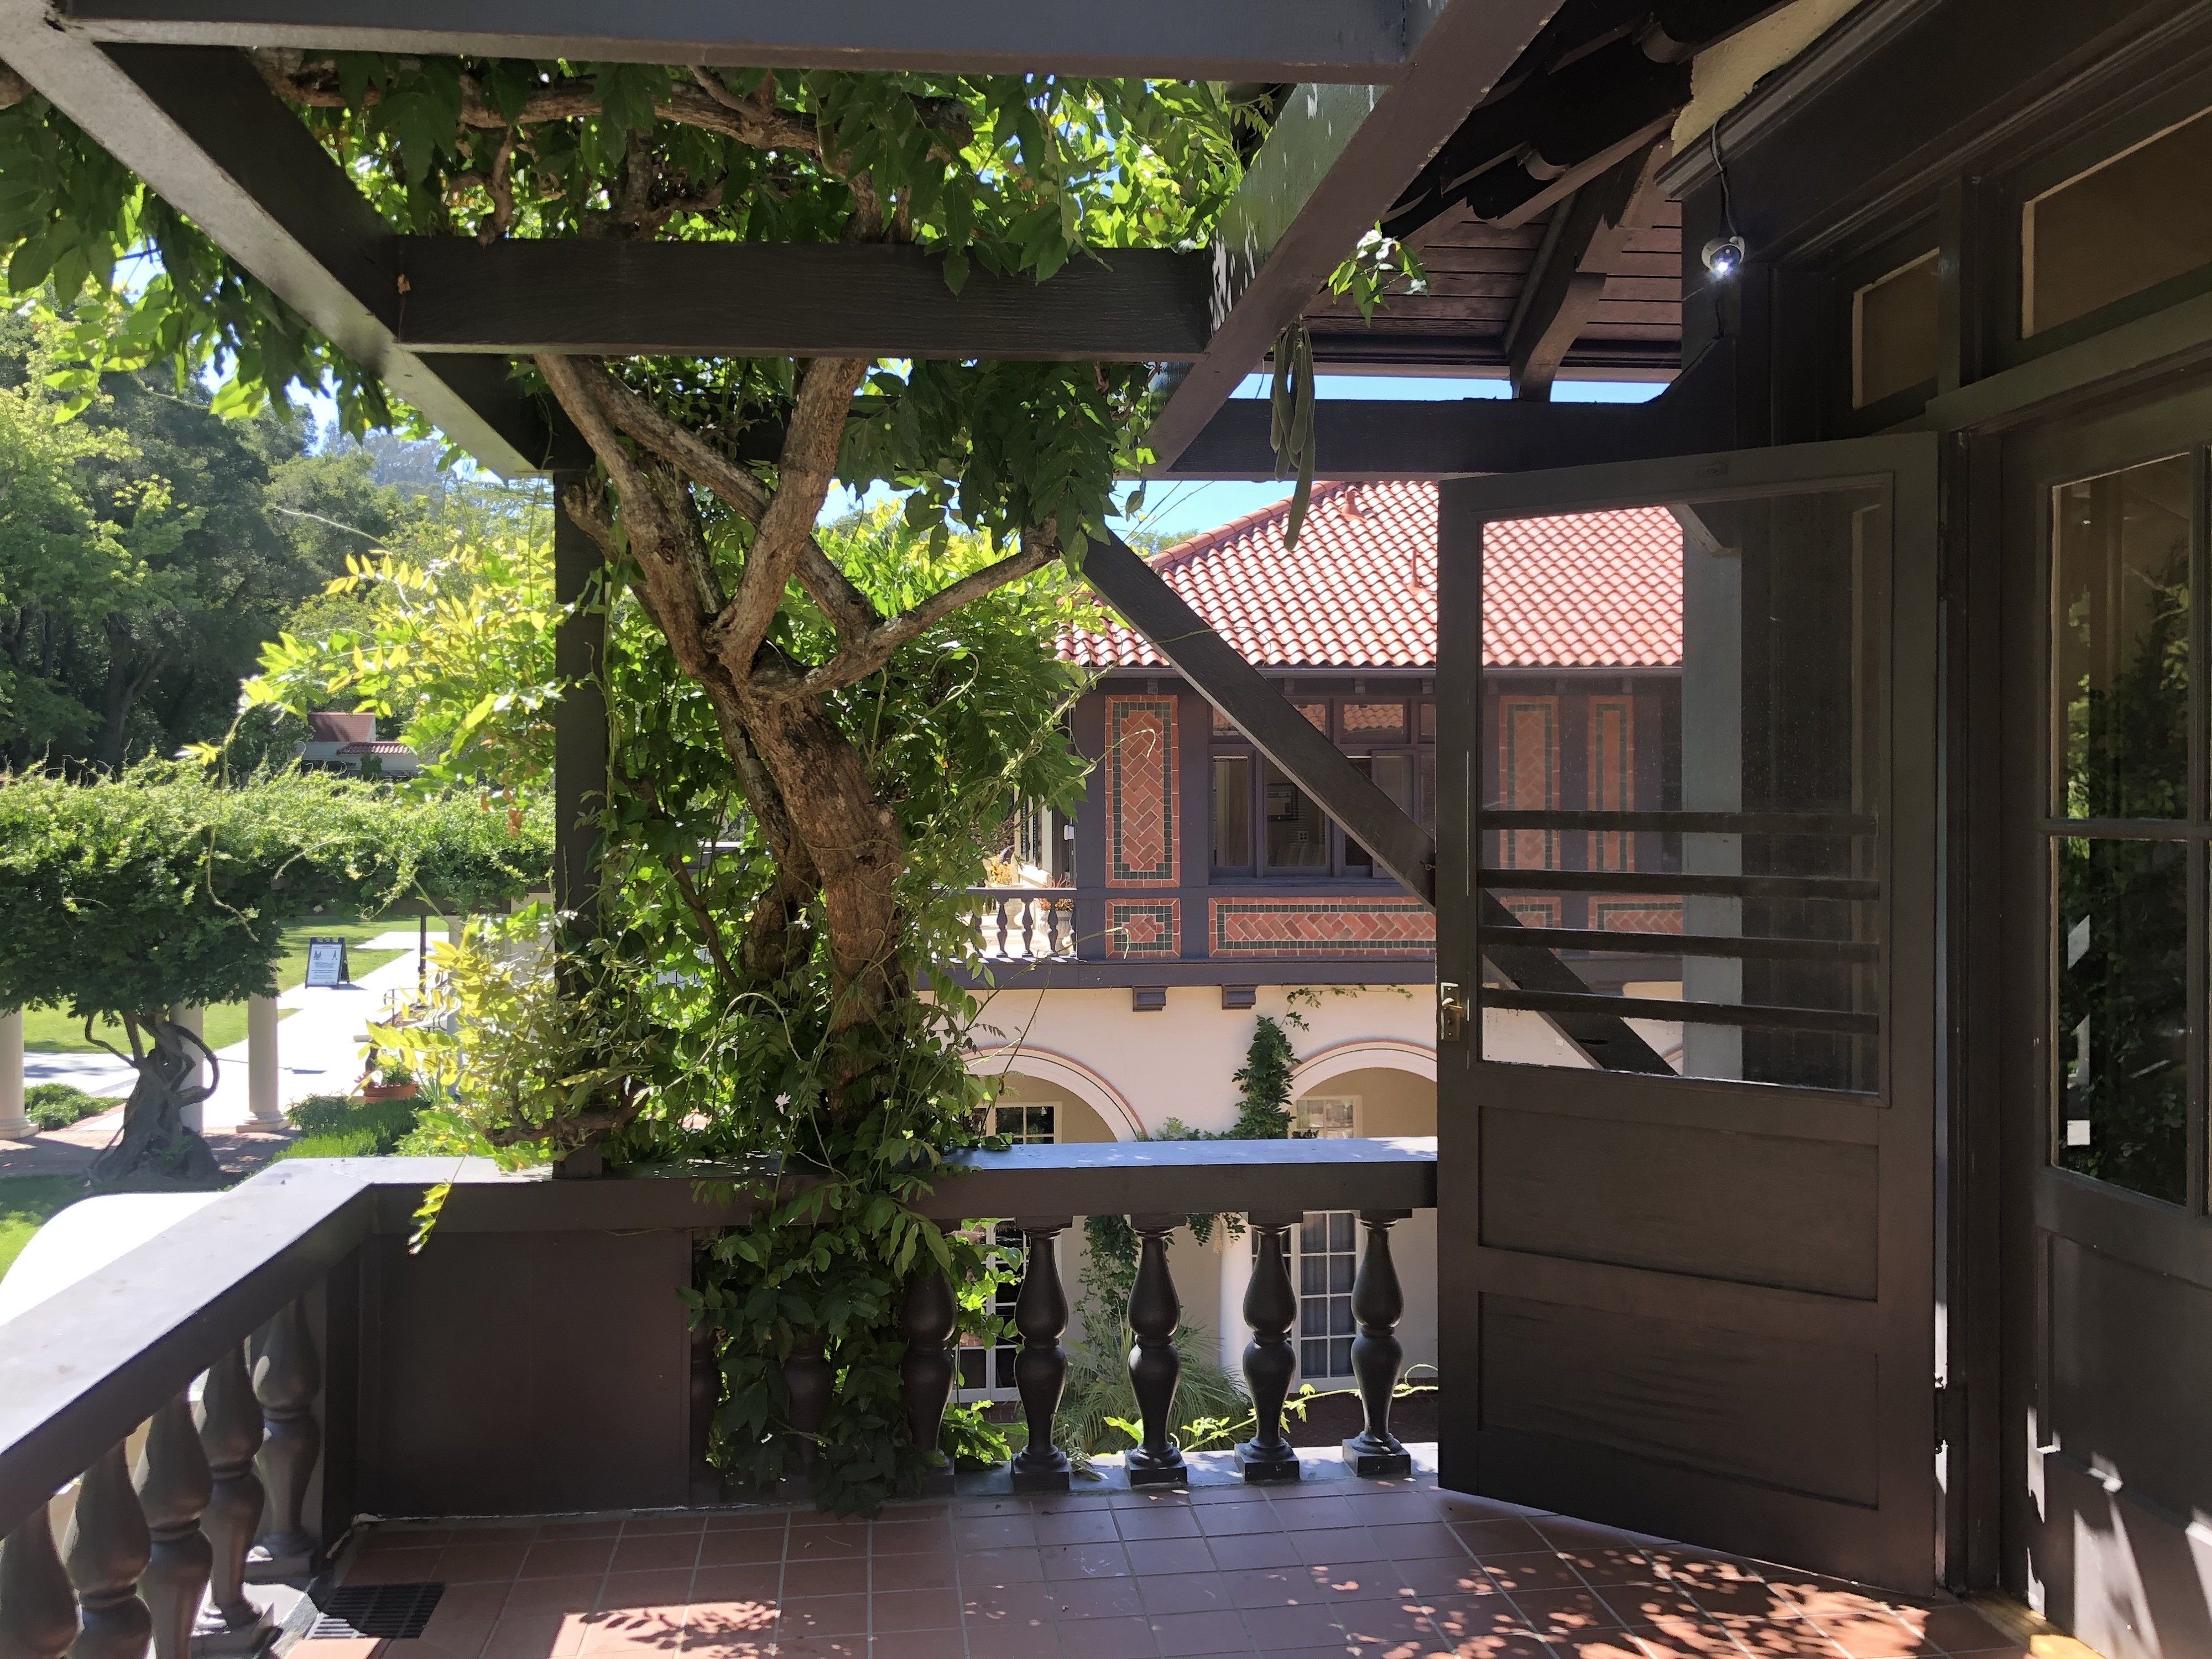 large vine growing up and over a pergola with view of house behind